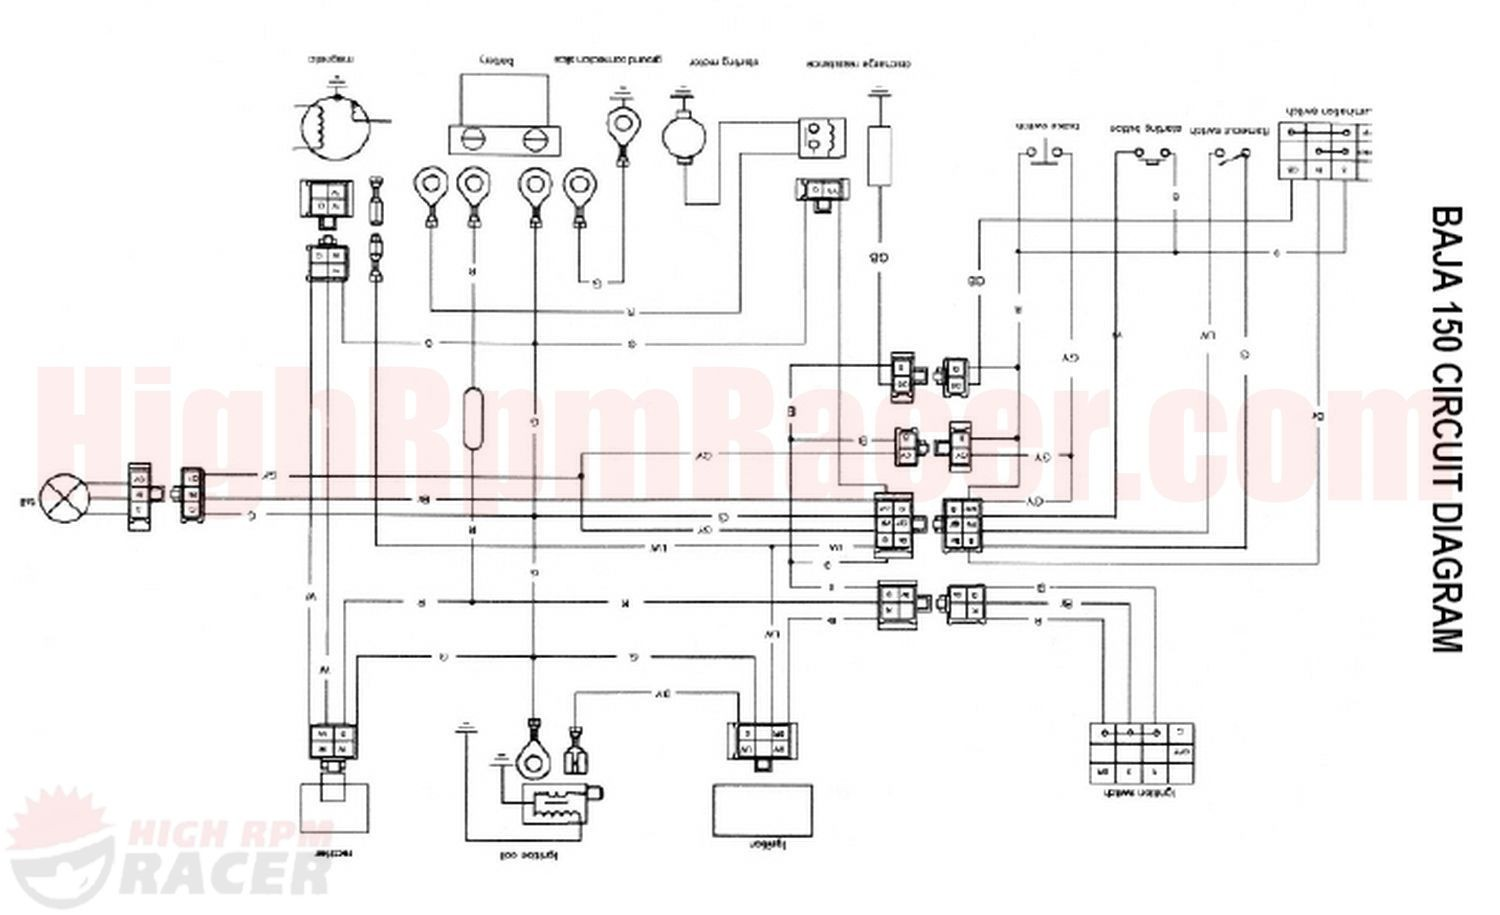 C70 Wiring Diagram - Wiring Diagram Dash on honda ct70 parts diagram, honda ct70 engine, honda ct70 cylinder head, honda ct70 flywheel, honda ct70 specifications, trail 90 wiring diagram, honda ct70 headlight, saab 9-7x wiring diagram, honda ct70 mini trail, honda ct70 fuel tank, honda ct70 air cleaner, honda ct70 exhaust, honda trail 70 carburetor diagram, honda ct70 parts catalog, honda motorcycle wiring schematics, honda ct70 turn signals, honda ct70 frame, saturn l-series wiring diagram, honda ct70 tires, honda ct70 carb diagram,